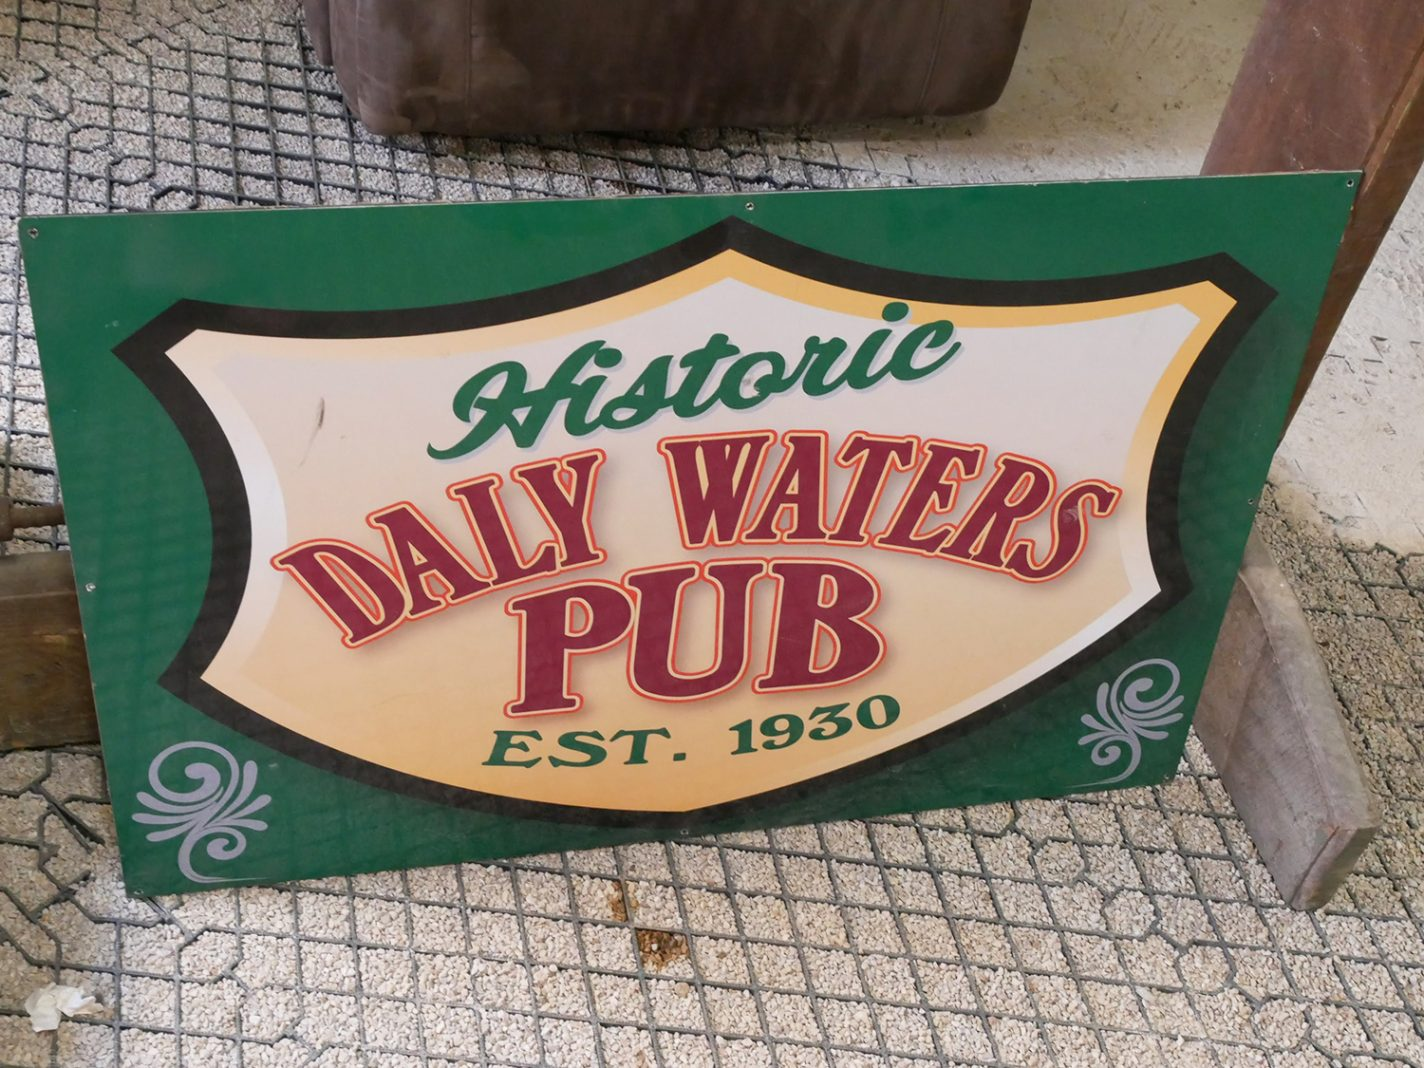 Historic Daly Waters Pub - Outback Australië